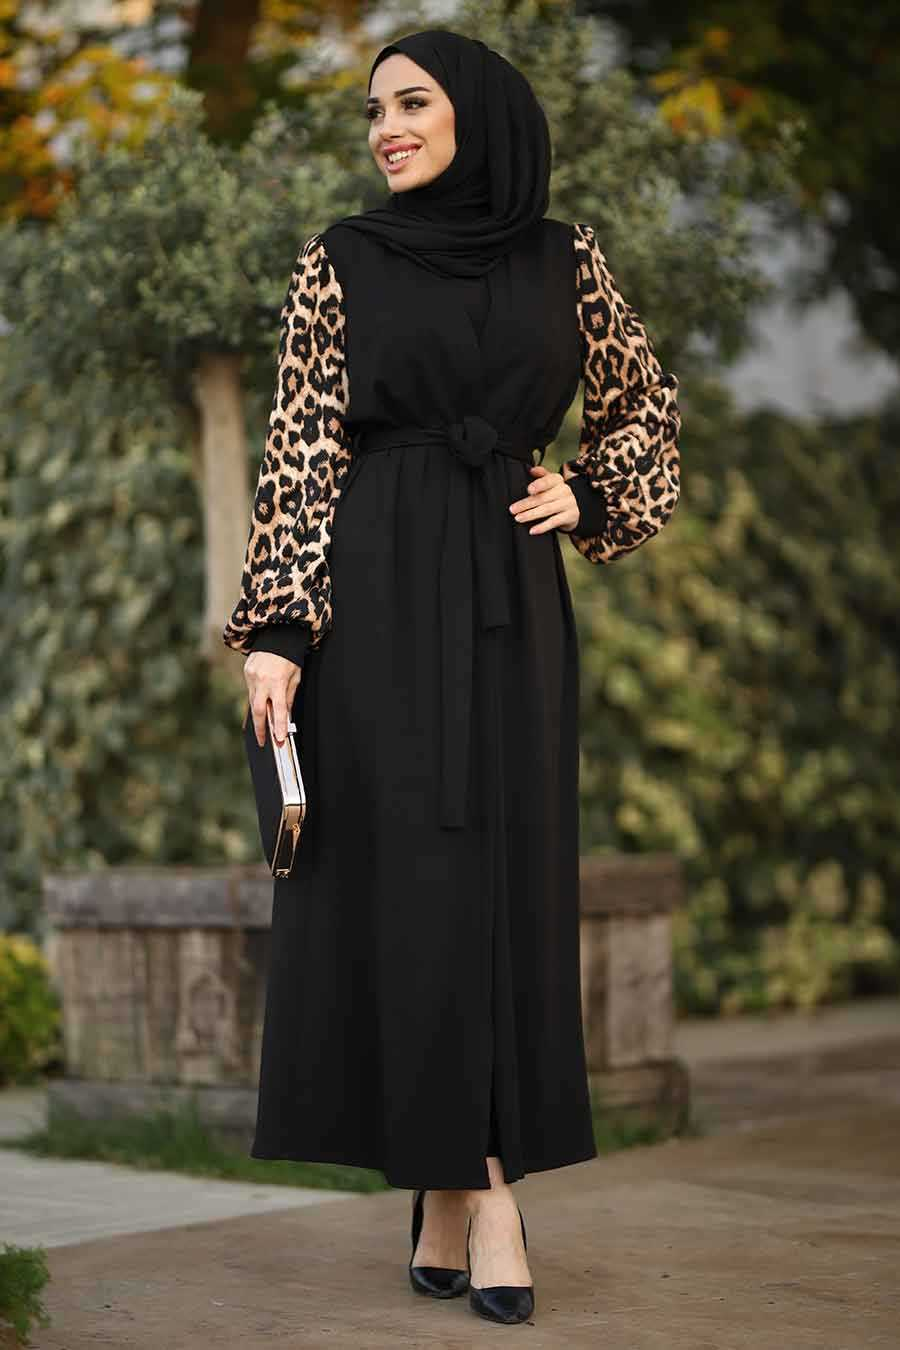 Black Hijab Evening Dress 9133S